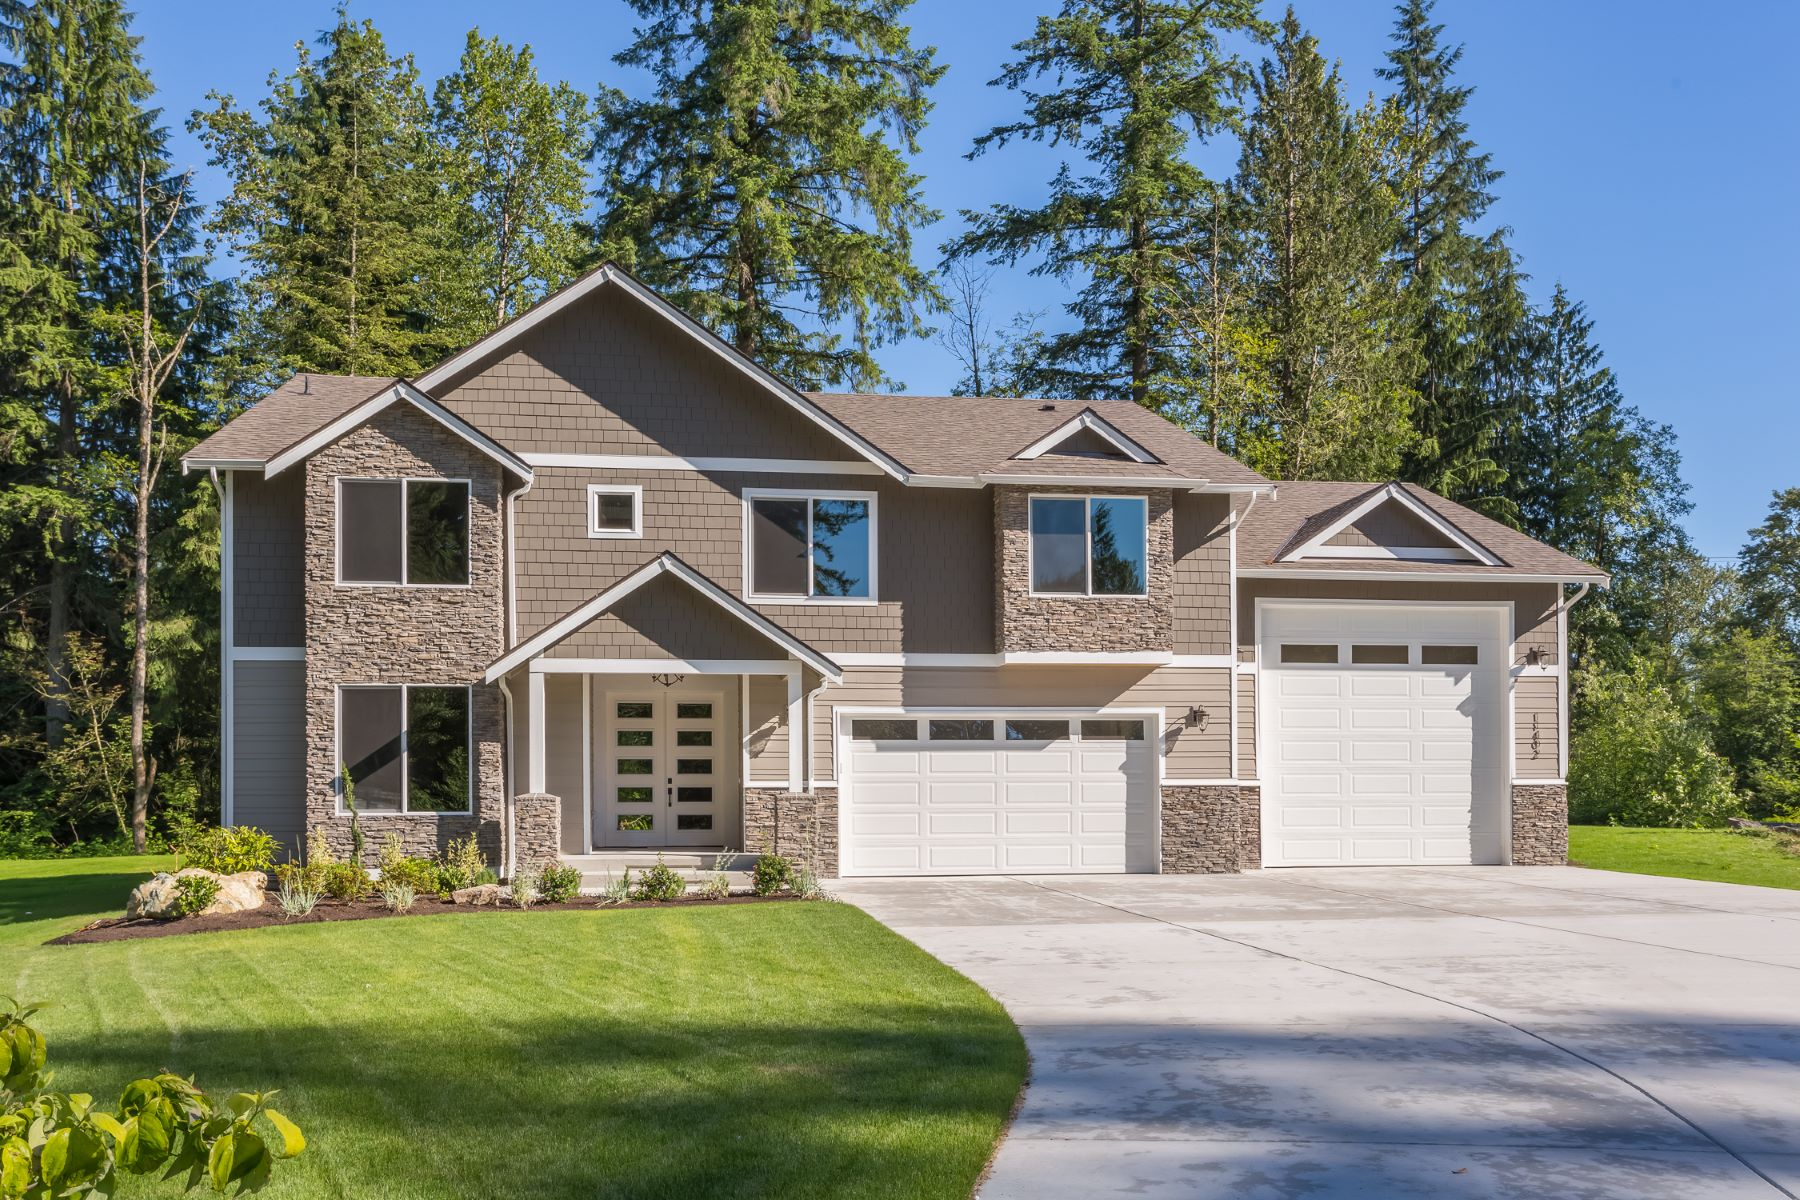 Single Family Home for Sale at Exquisite Echo Lake Living 11402 207th St SE (Lot 8) Snohomish, Washington 98296 United States